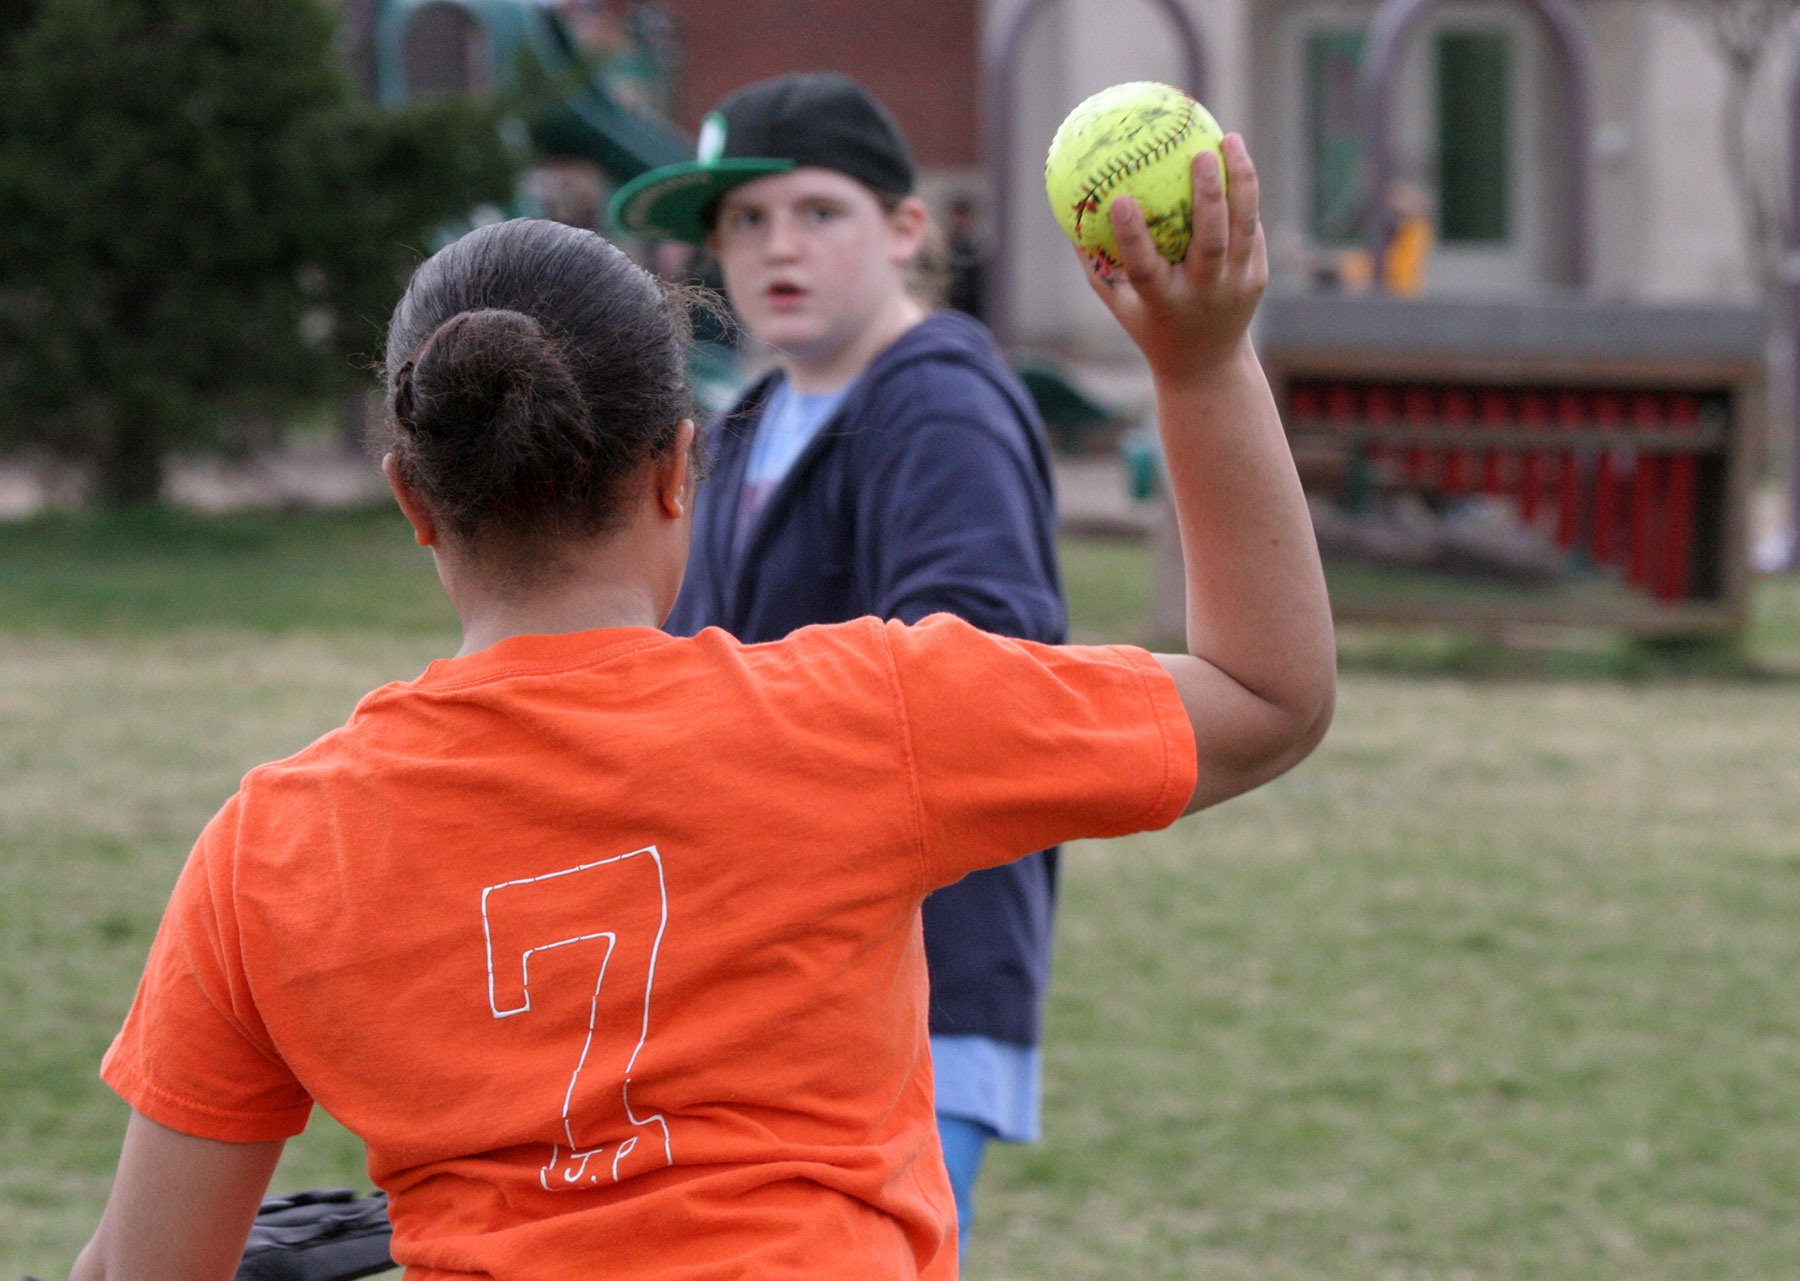 Softball in February – Brrrr